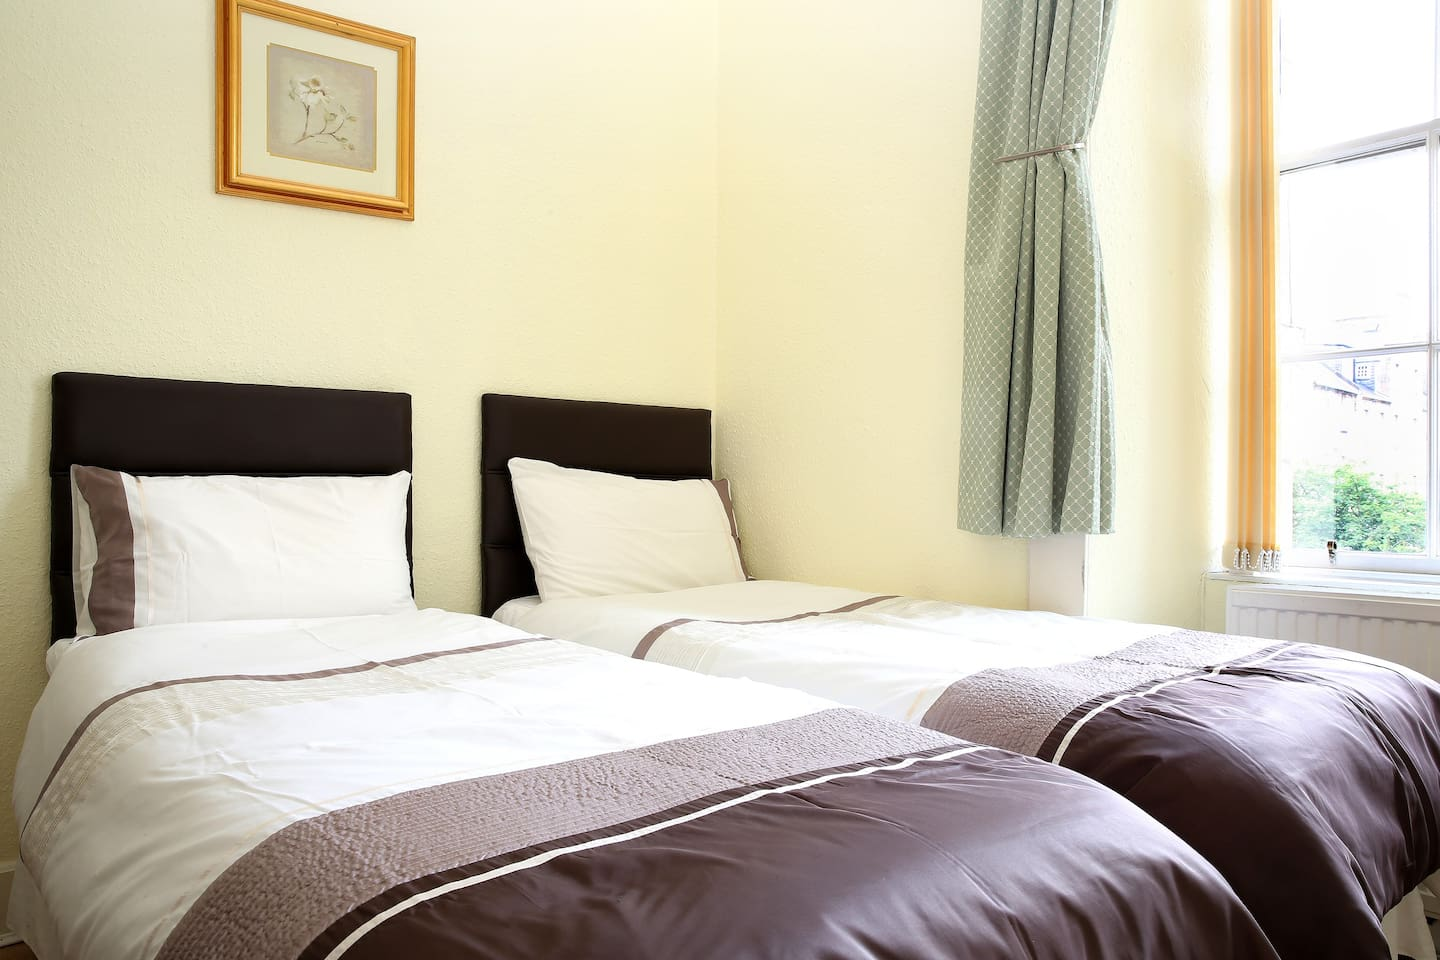 The second bedroom with two single beds or a king size double bed